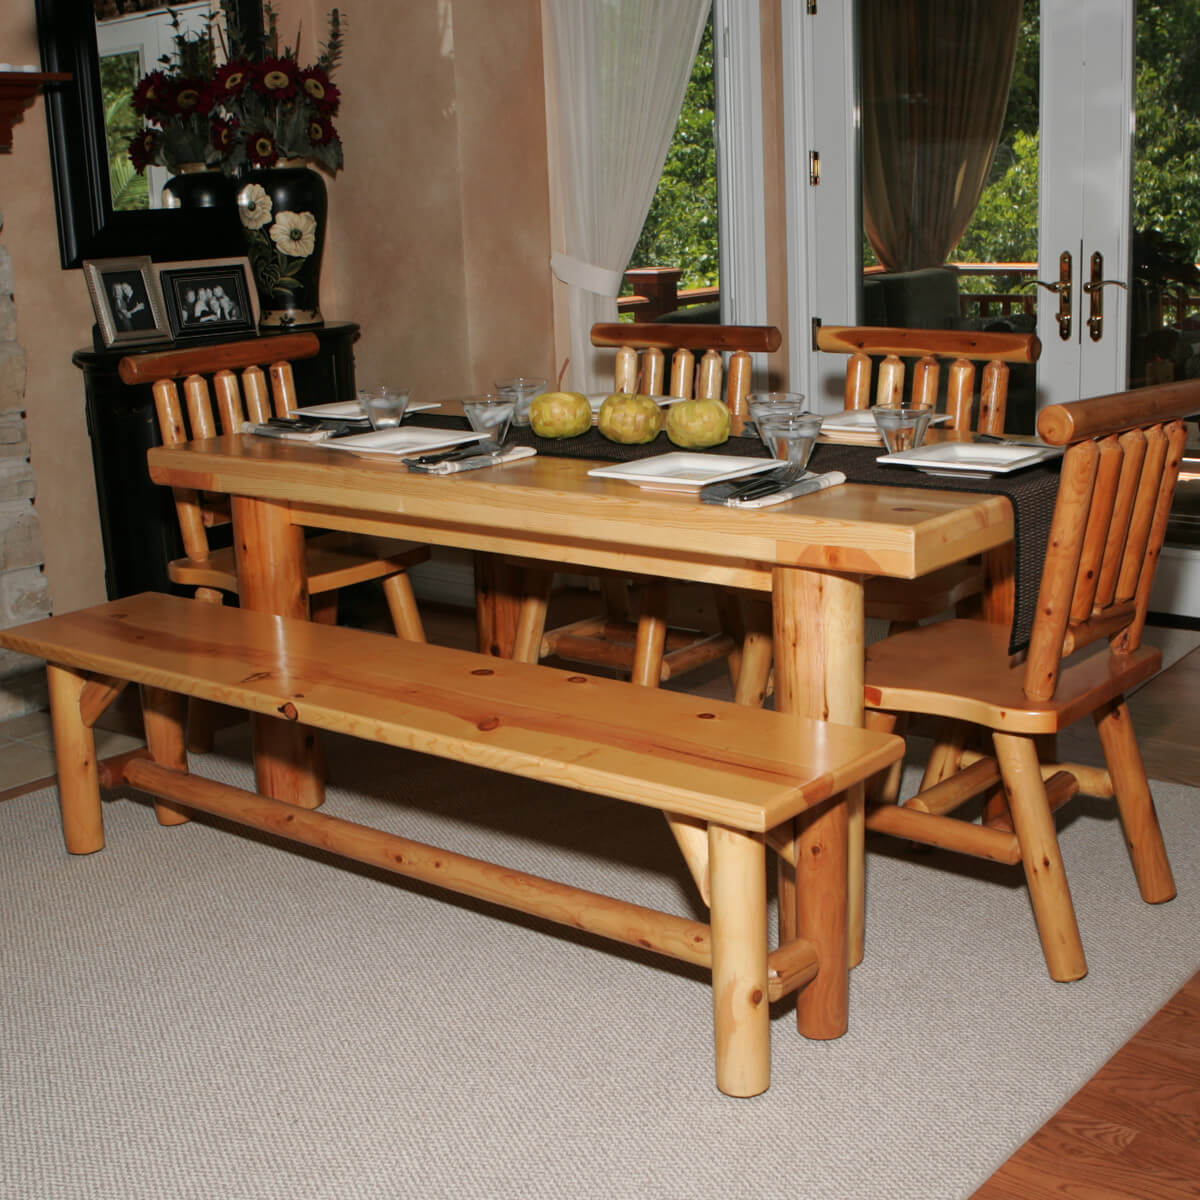 Hereu0027s a dining table set with bench perfect for the log cabin or home. Seating : bench table dining set - pezcame.com